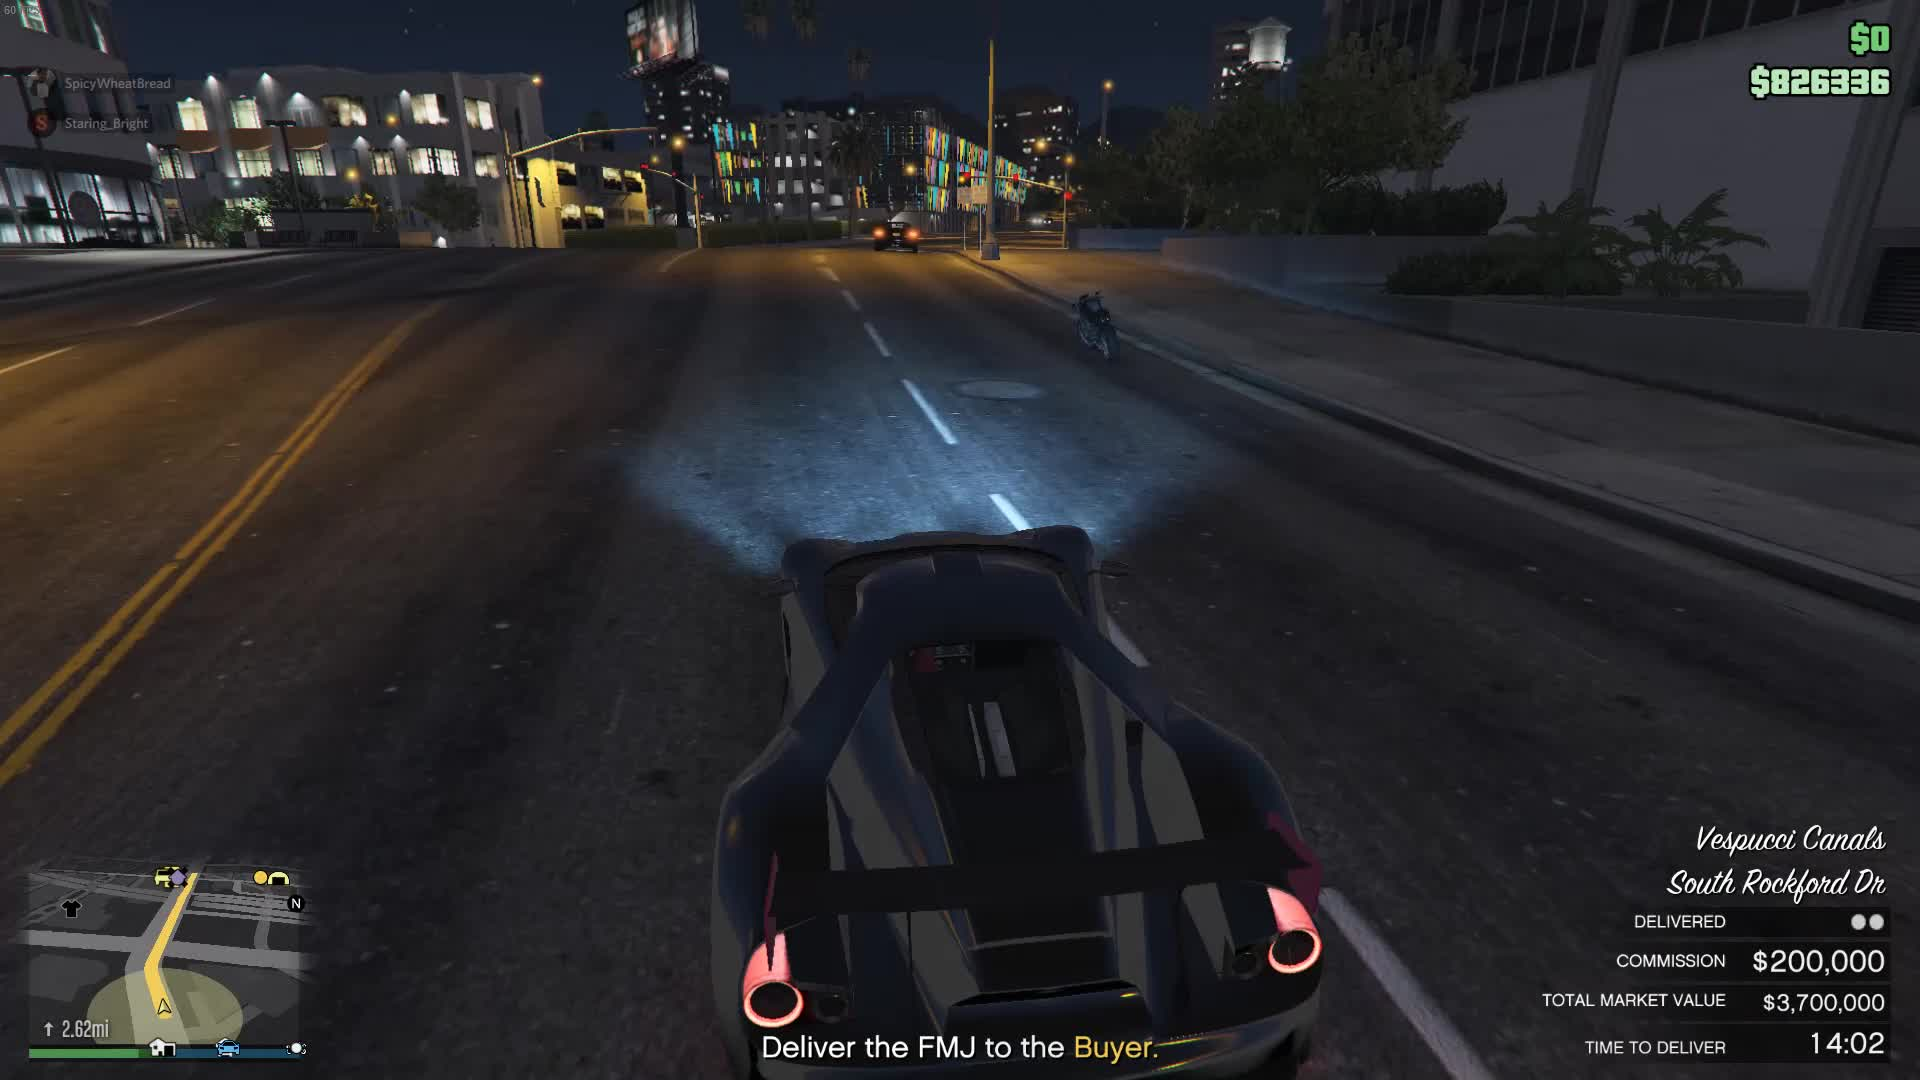 grandtheftautov, Grand Theft Auto V 2018.10.13 - 17.39.34.08.DVR Trim (2) GIFs